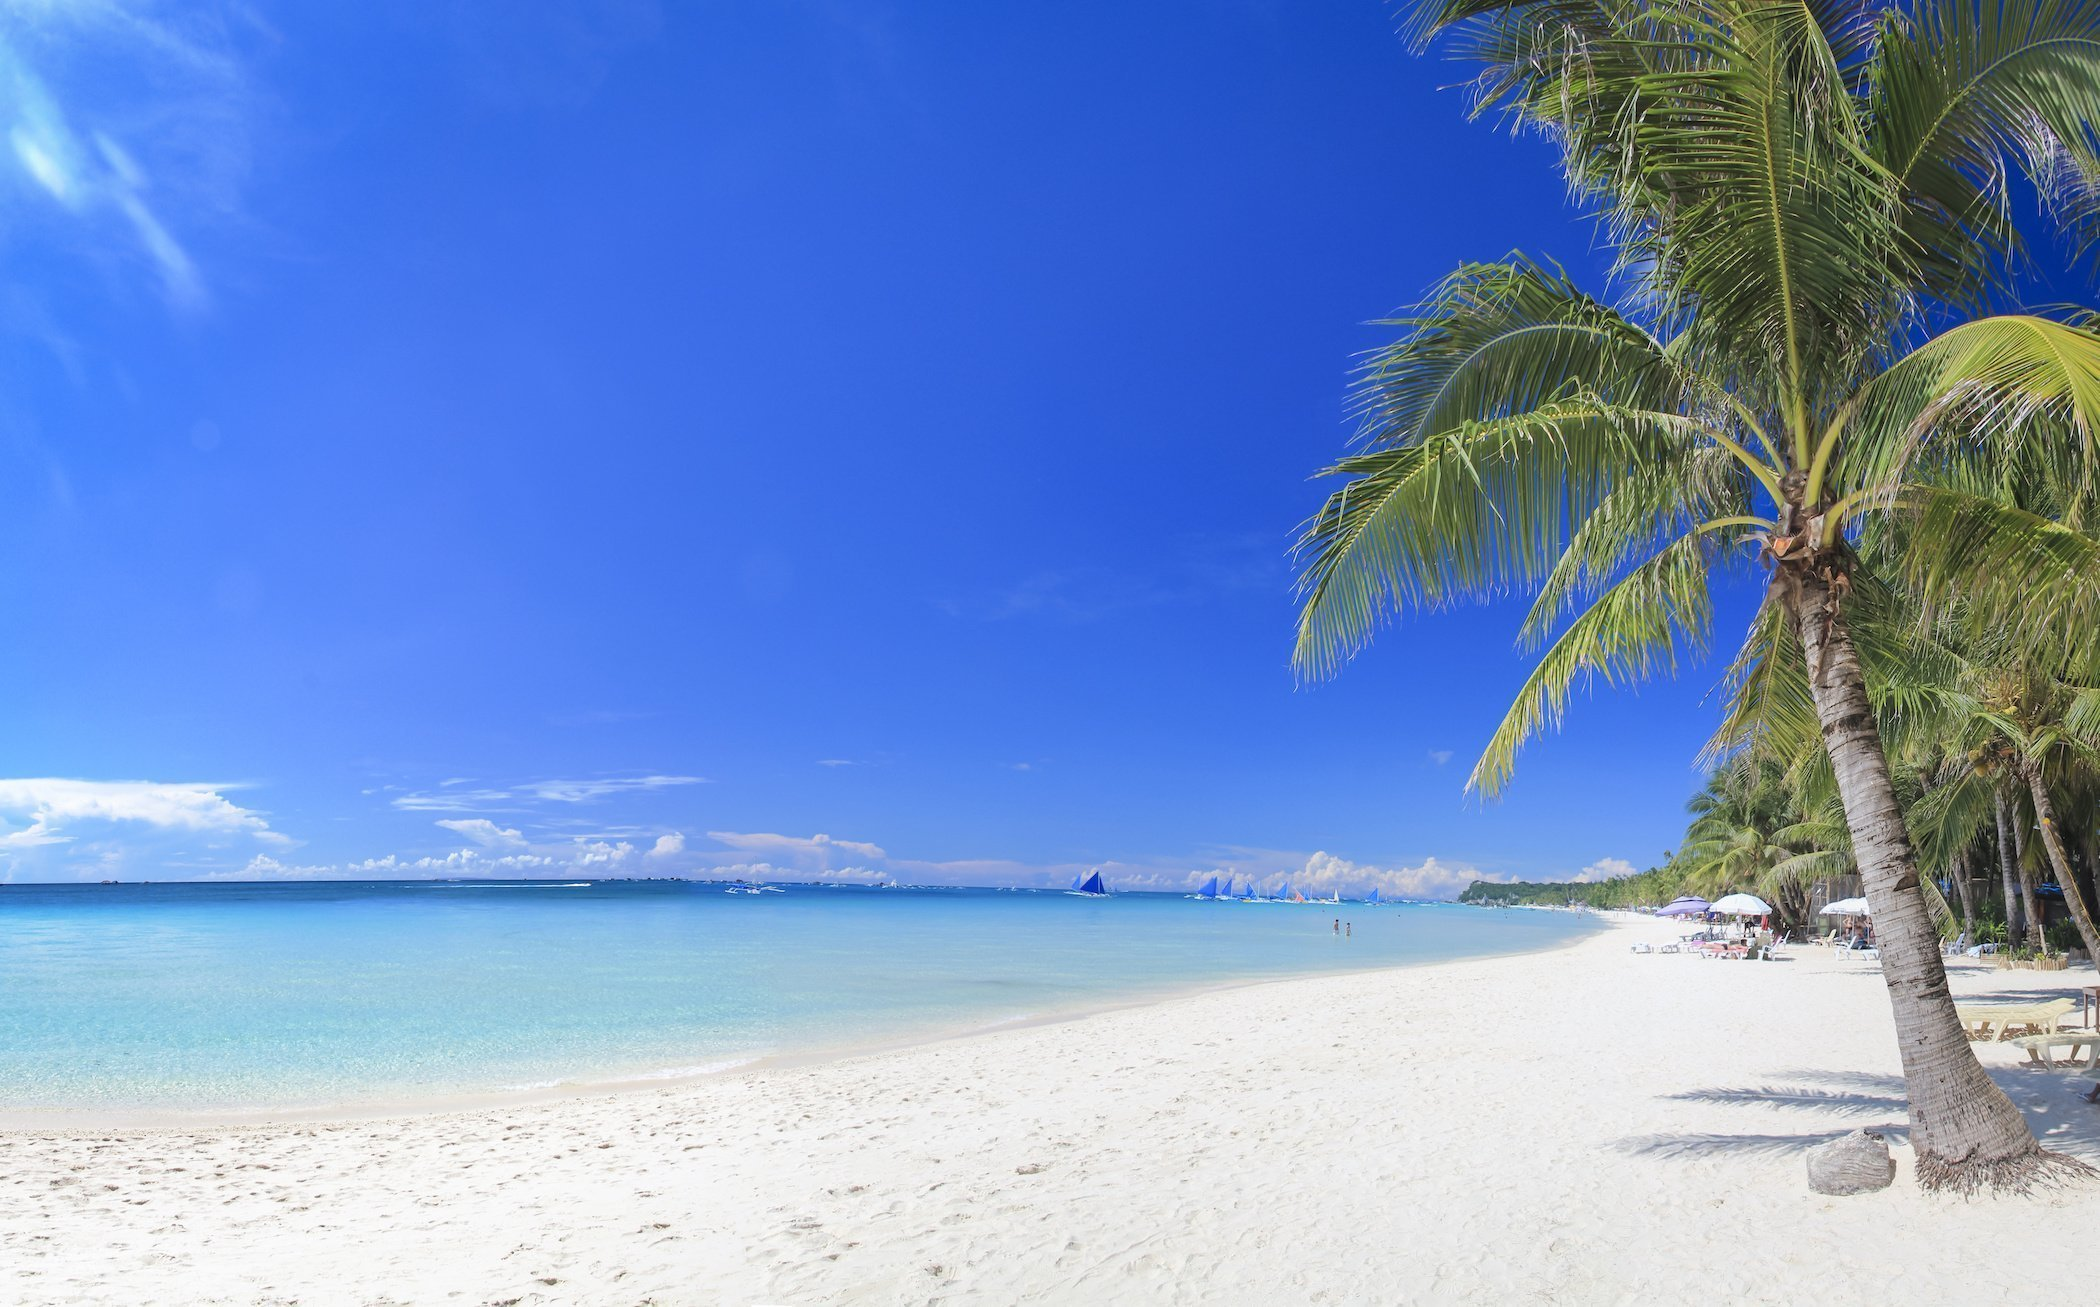 Picture perfect beach with white sand, turquoise ocean water in Boracay Island